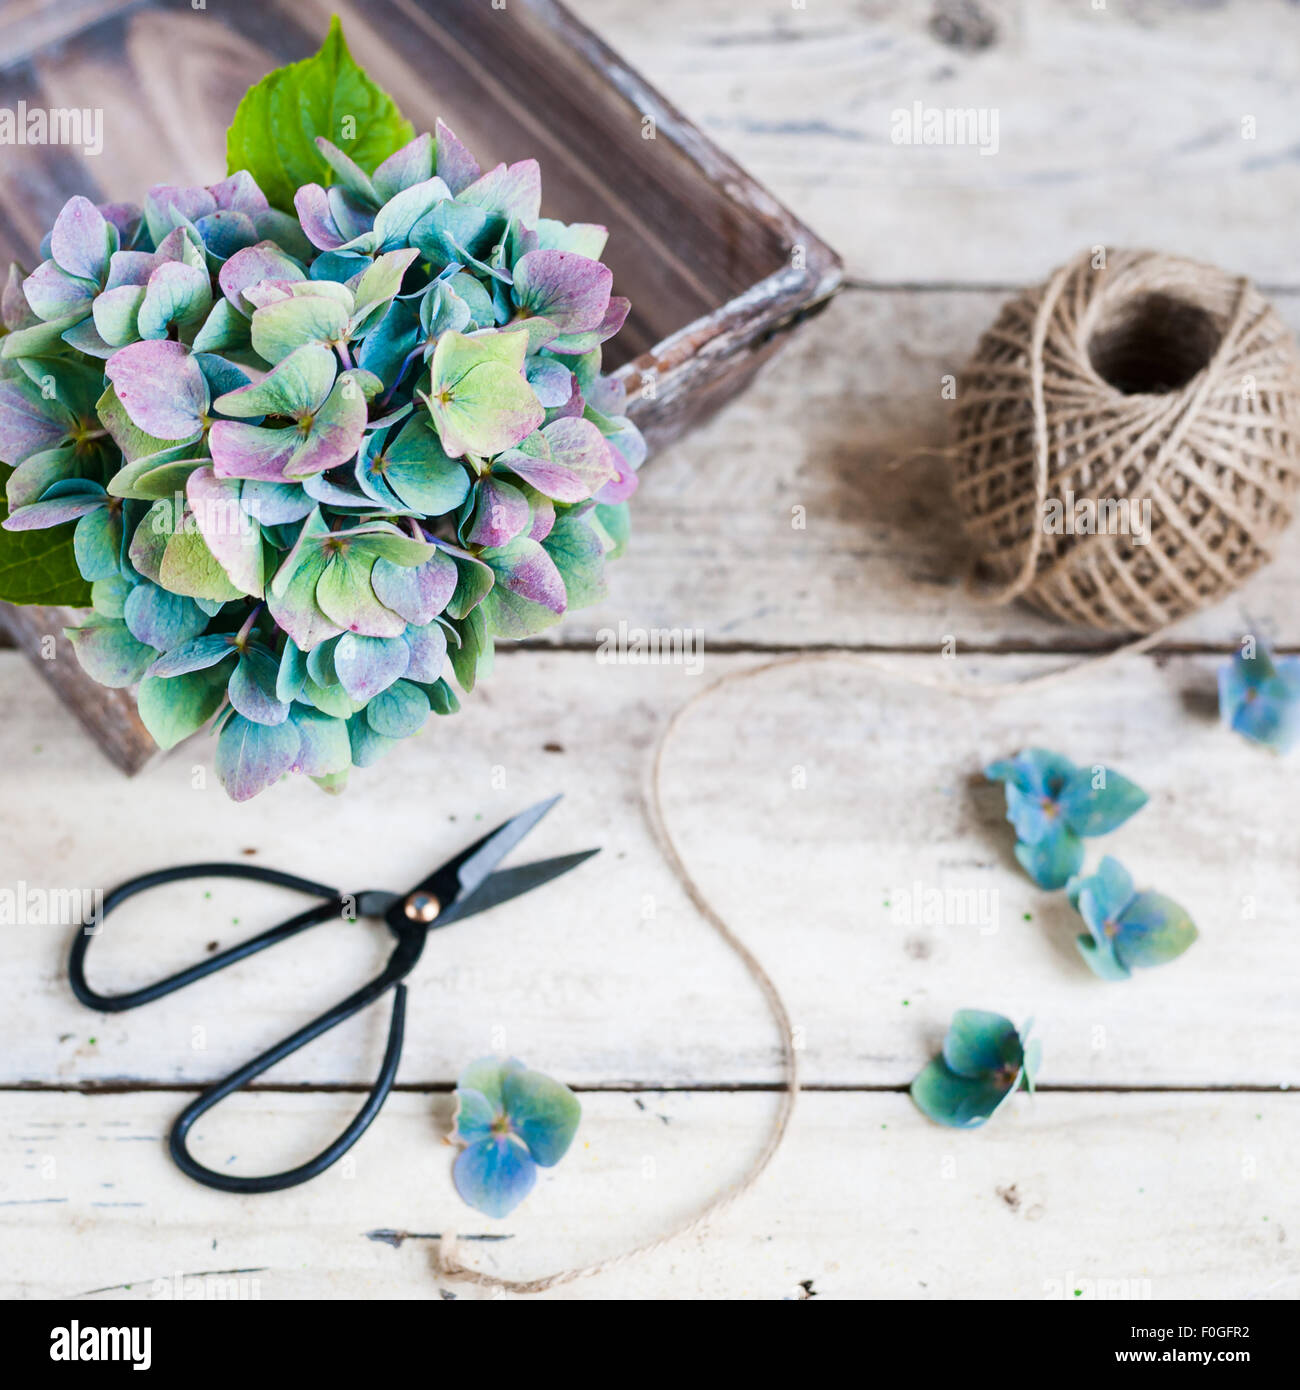 Blue-purple hydrangea in a basket on wooden table with twine and black scissors - Stock Image